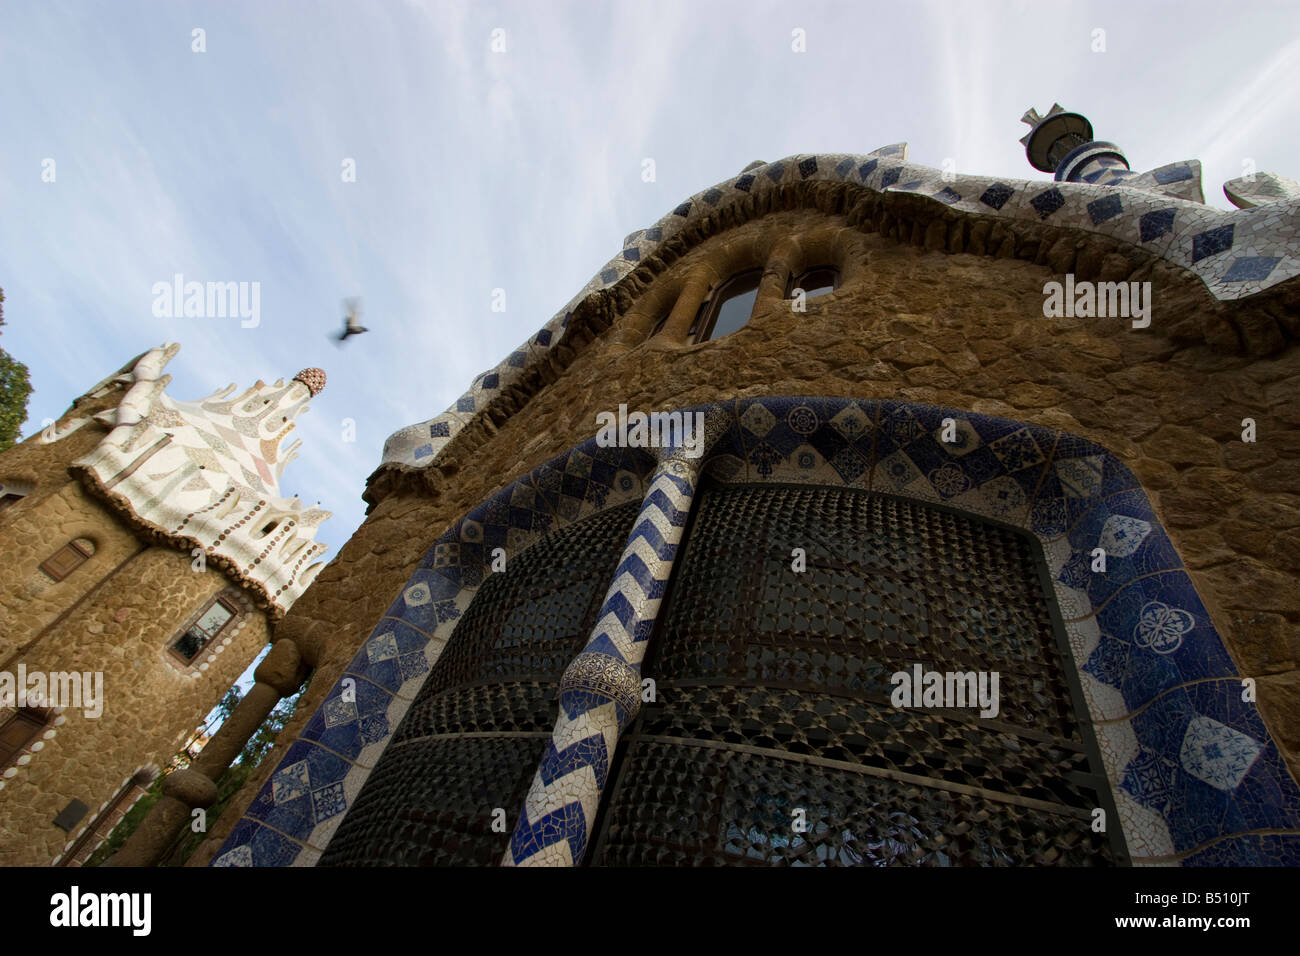 Detail of building at entrance to Parc Guell parkland area commisioned by Count Guell to Goudi Barcelona Spain - Stock Image